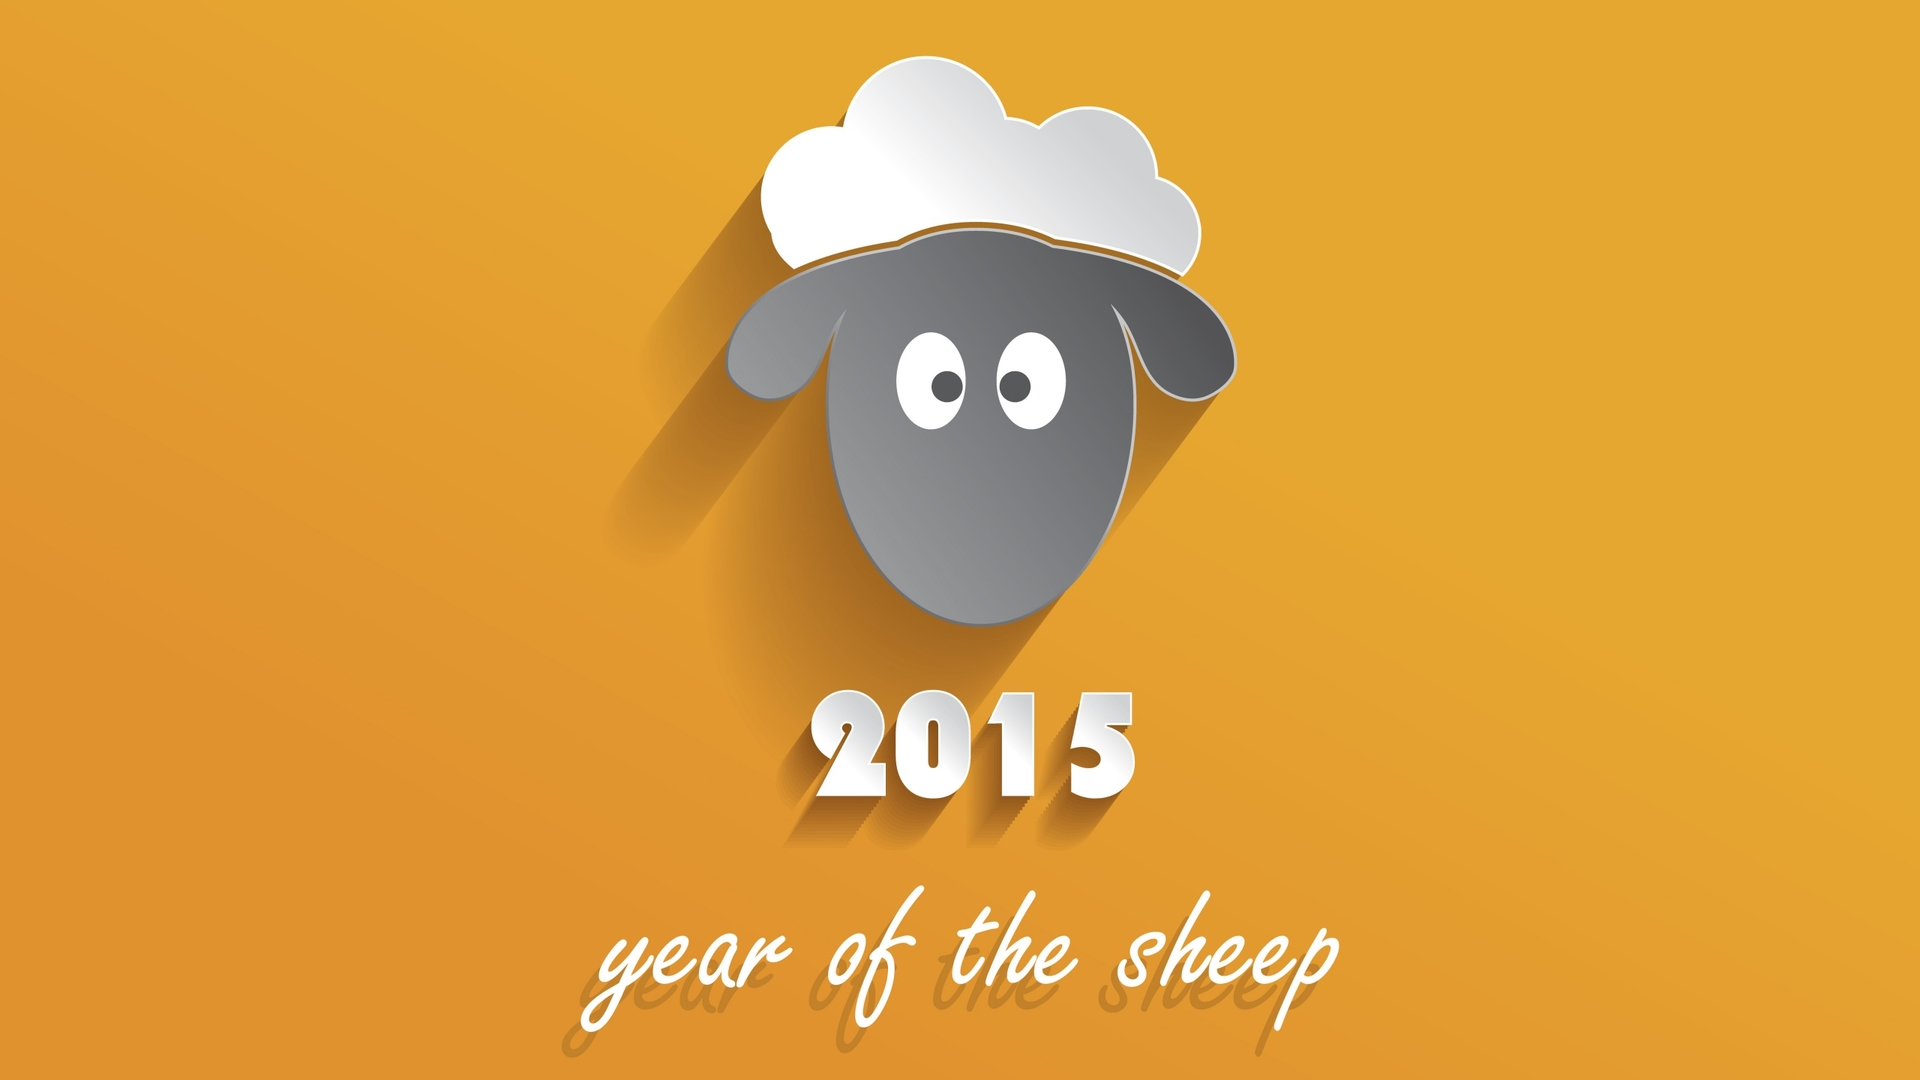 Chinese-New-Year-of-the-Sheep-Ram-Goat-flat-material-design-shadow-wallpaper-wallpaper-wp4805244